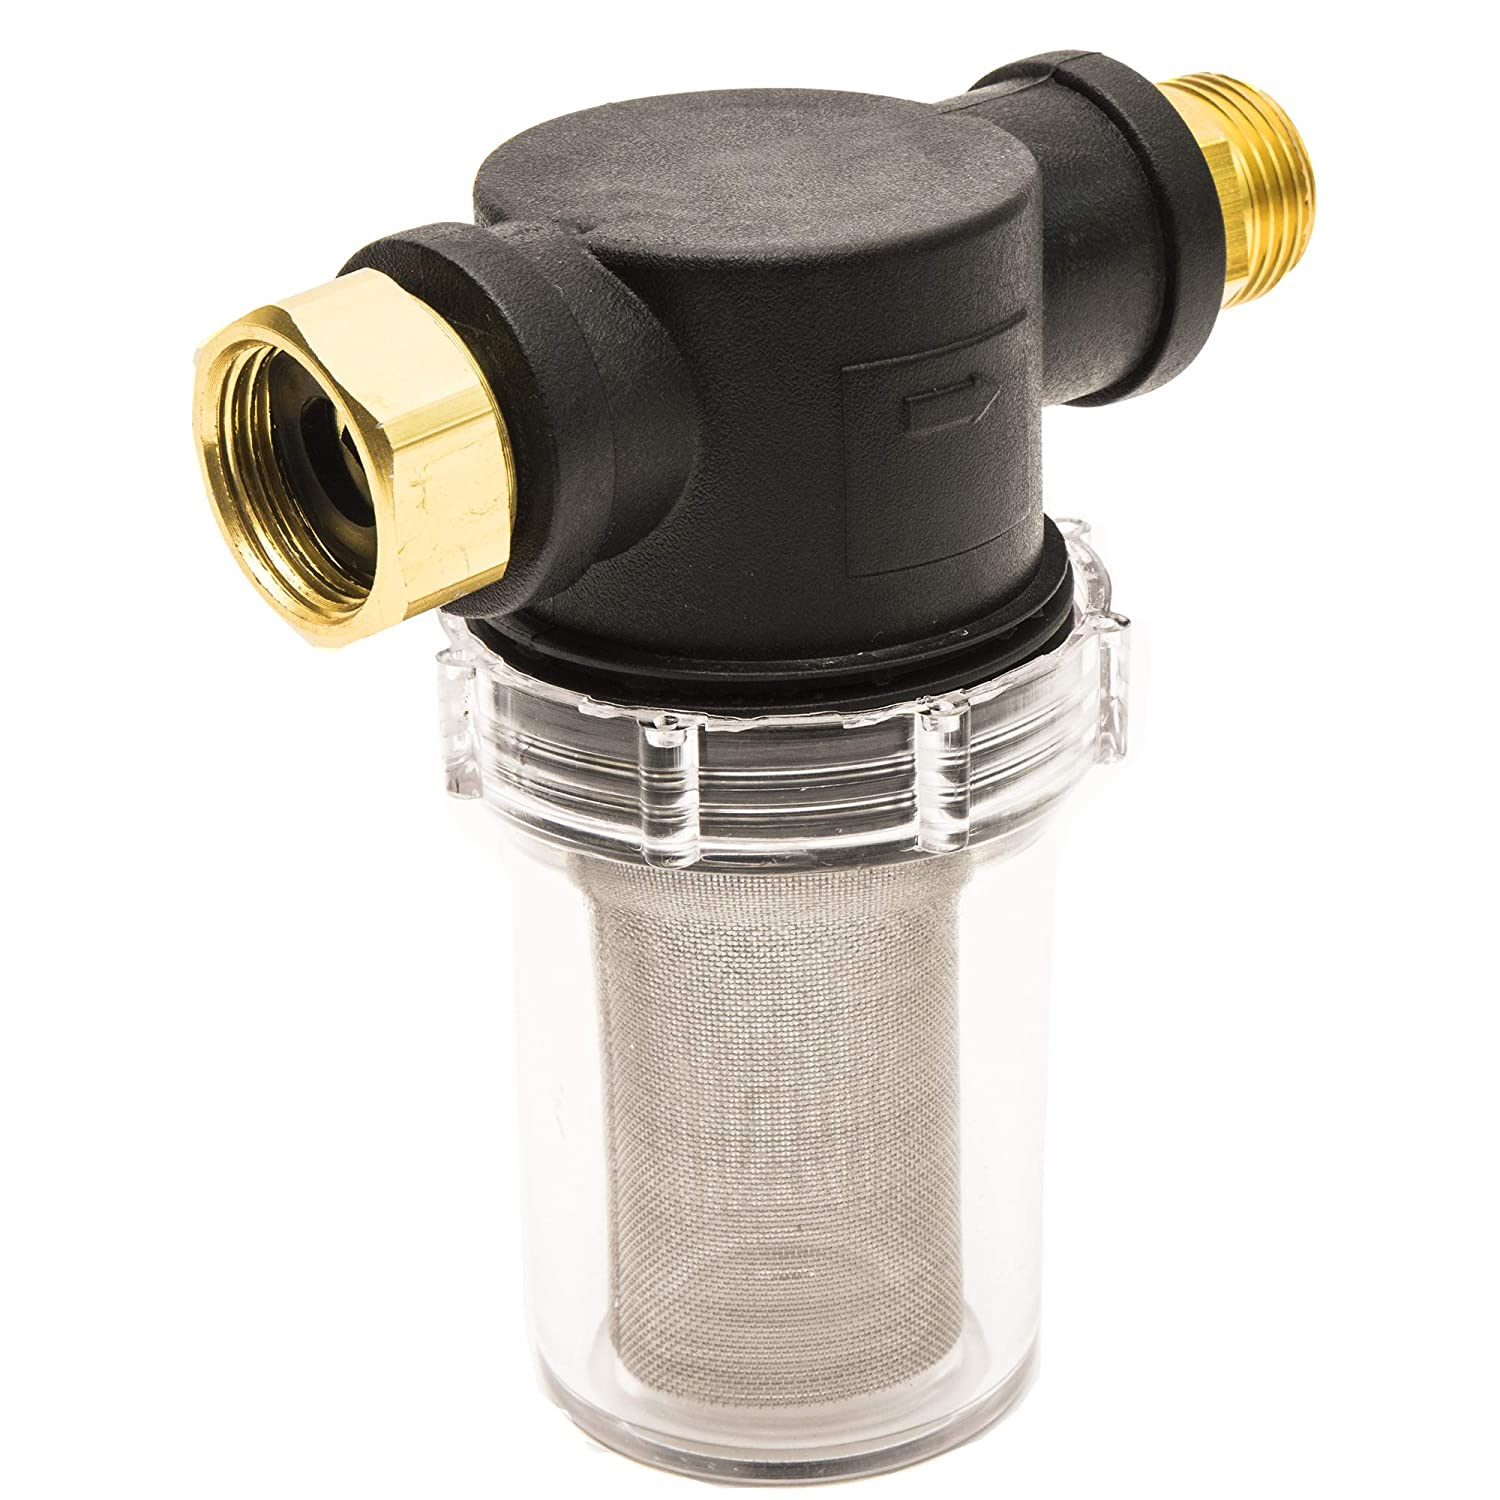 Thunder Hardware Sediment Filter Attachment for Garden Hoses and Pressure Washers(40 Mesh Screen)